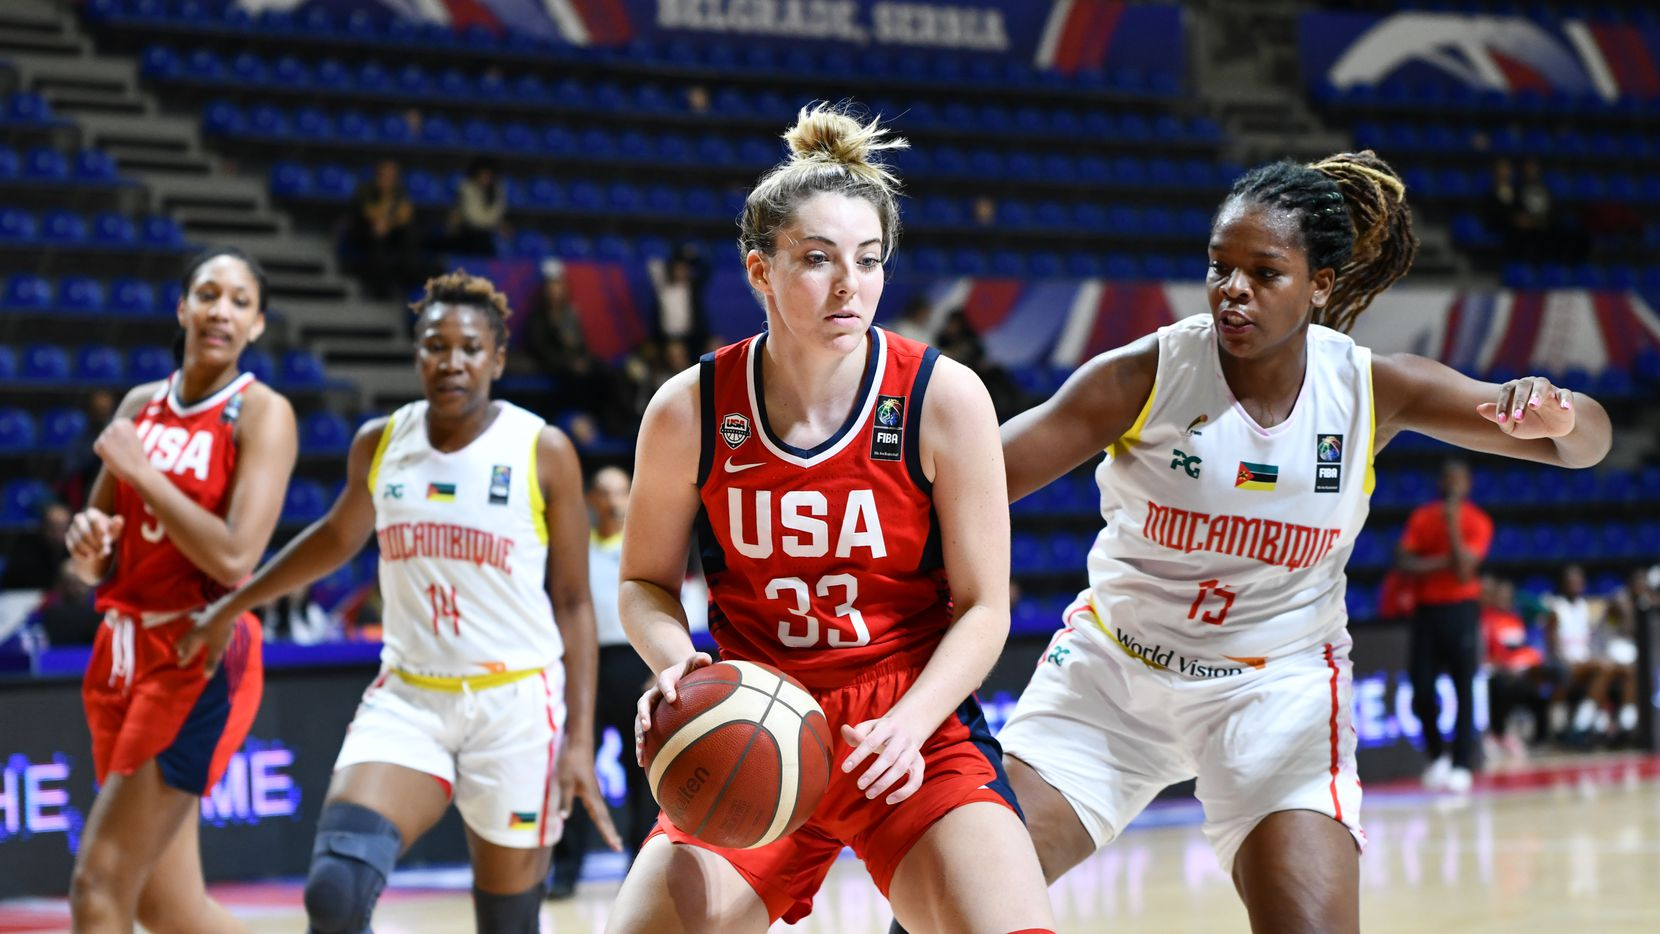 Katie Lou Samuelson (L) of USA in action againast Deolinda Gimo (R) of Mozambique during the FIBA Women's Olympic Qualifying Tournament 2020 Group A match between Mozambique and USA at Aleksandar Nikolic Hall on February 8, 2020 in Belgrade, Serbia.